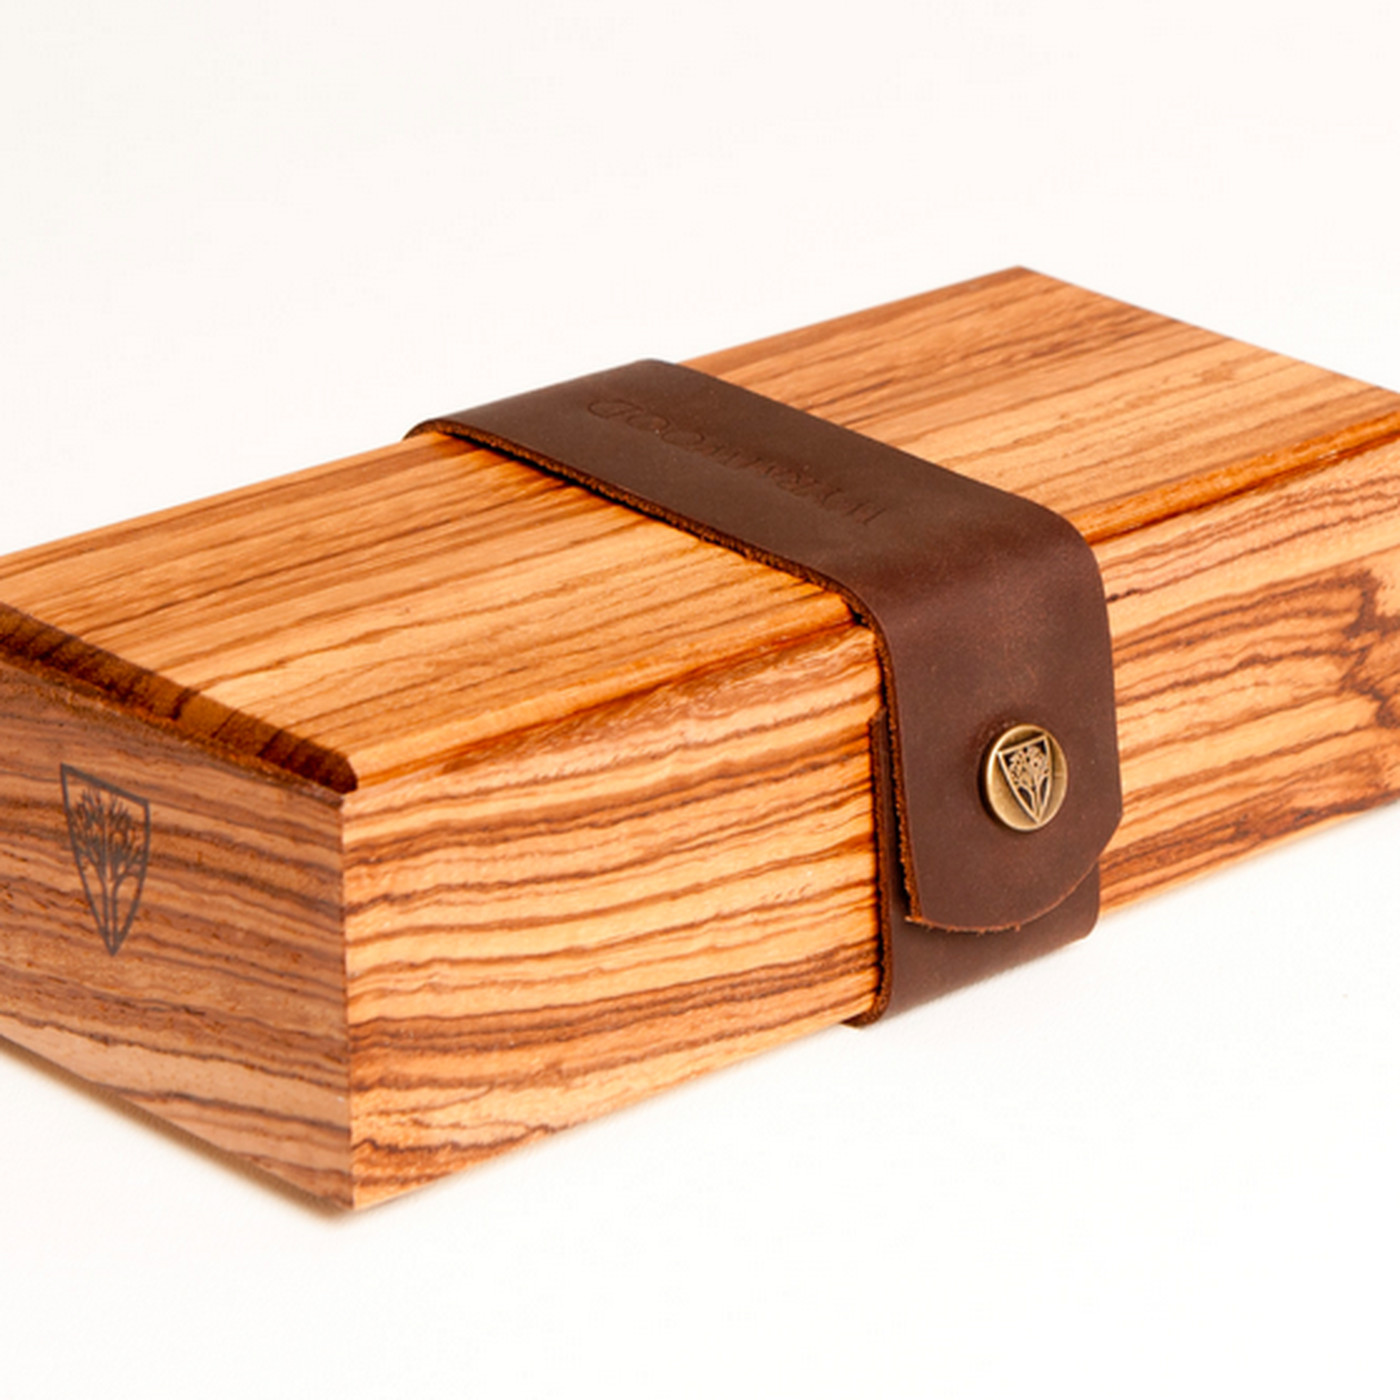 How Wyrmwood created a luxury role-playing product and